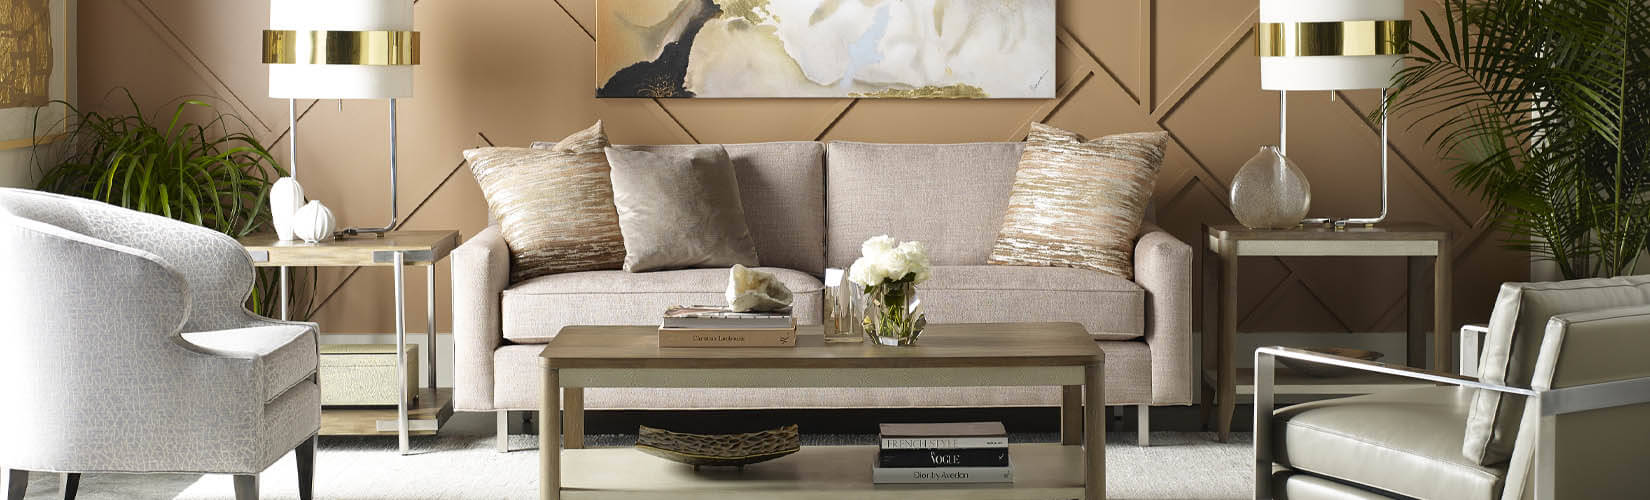 Our Top 4 Autumn Winter Interior Trends for 2020